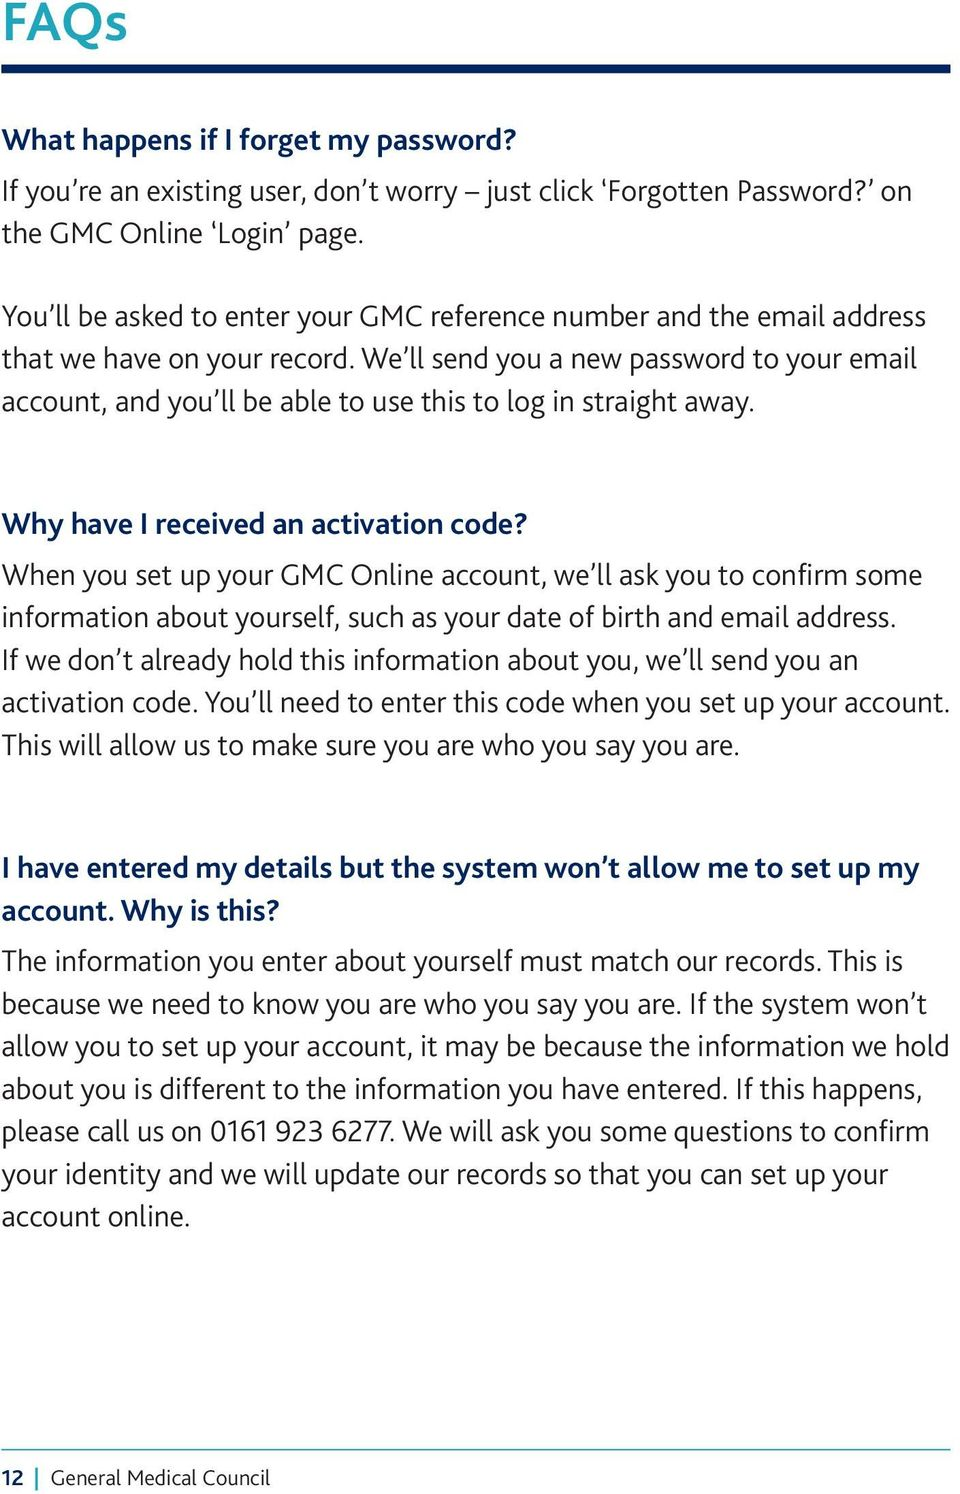 Why have I received a activatio code? Whe you set up your GMC Olie accout, we ll ask you to cofirm some iformatio about yourself, such as your date of birth ad email address.